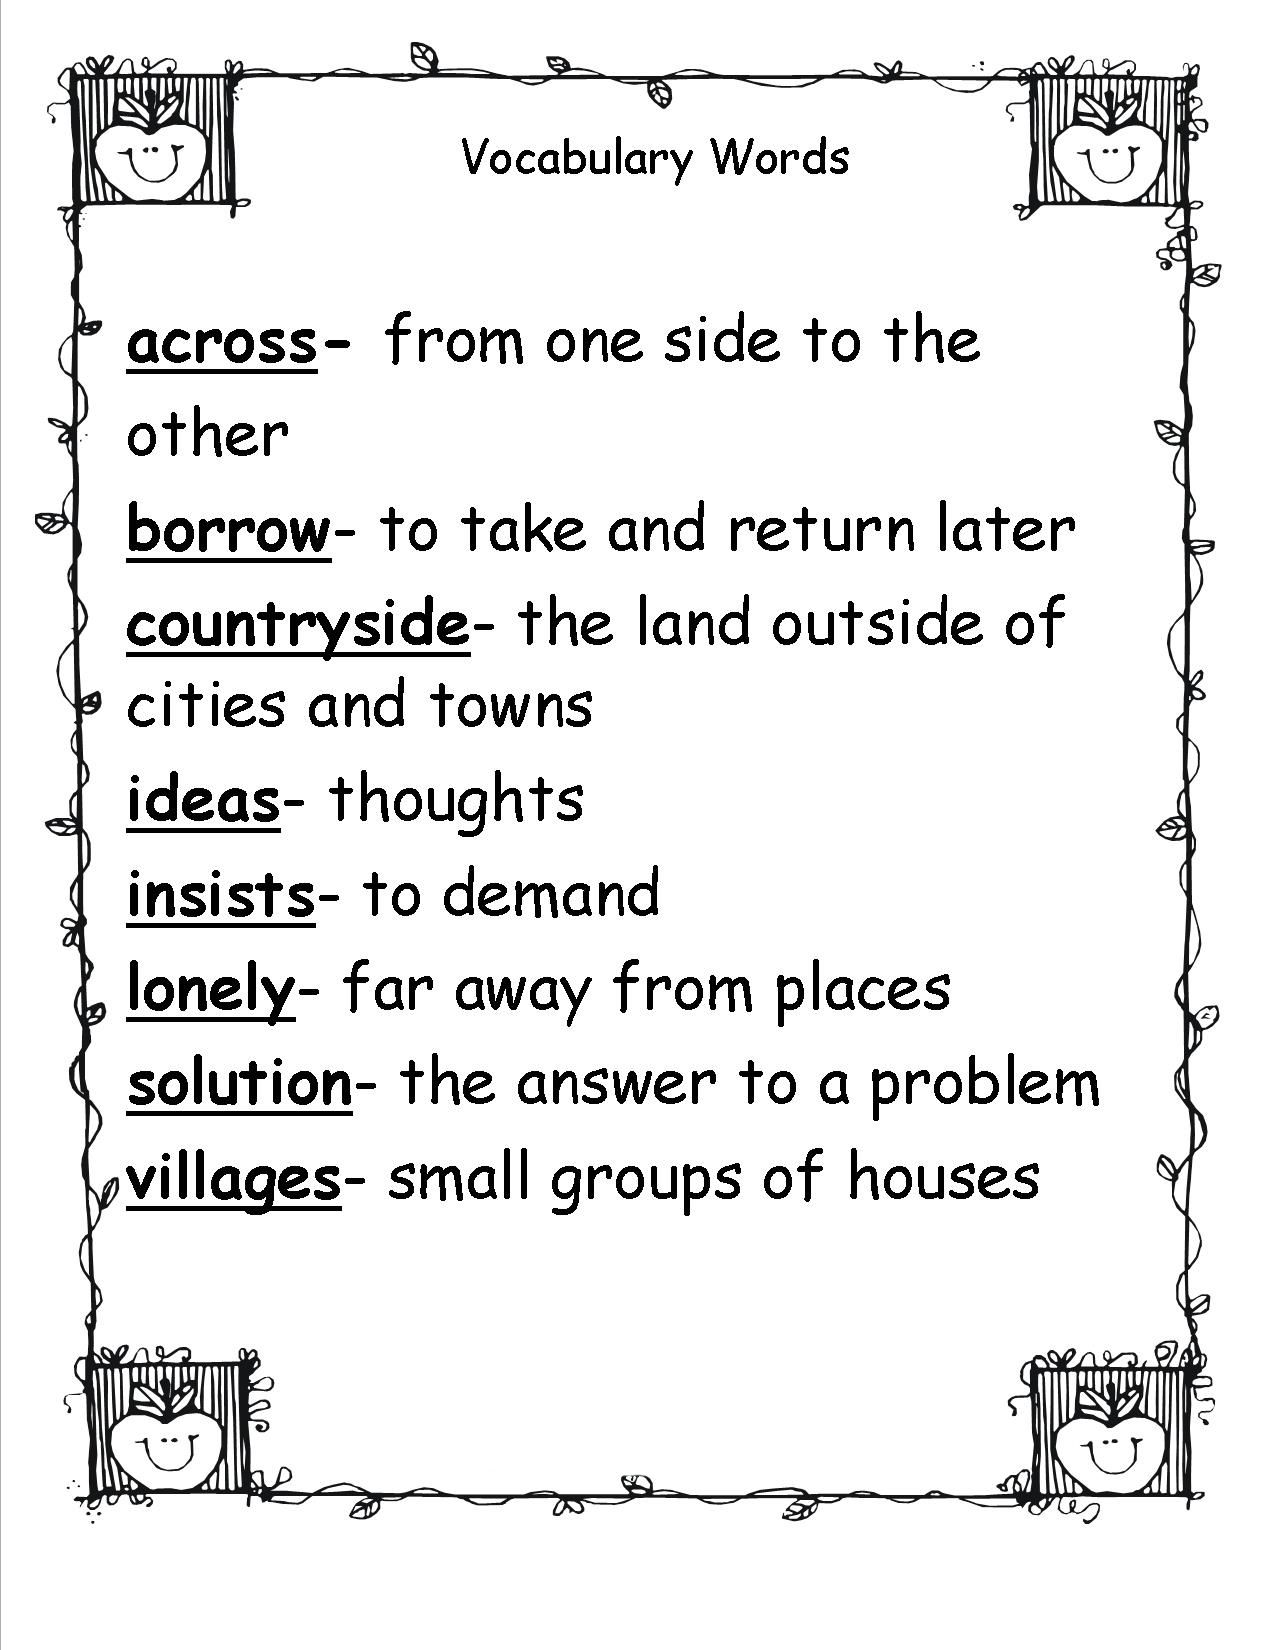 2nd Grade Spelling Words Best Coloring Pages For Kids Vocabulary Words 2nd Grade Spelling Words Spelling Words [ 1650 x 1275 Pixel ]